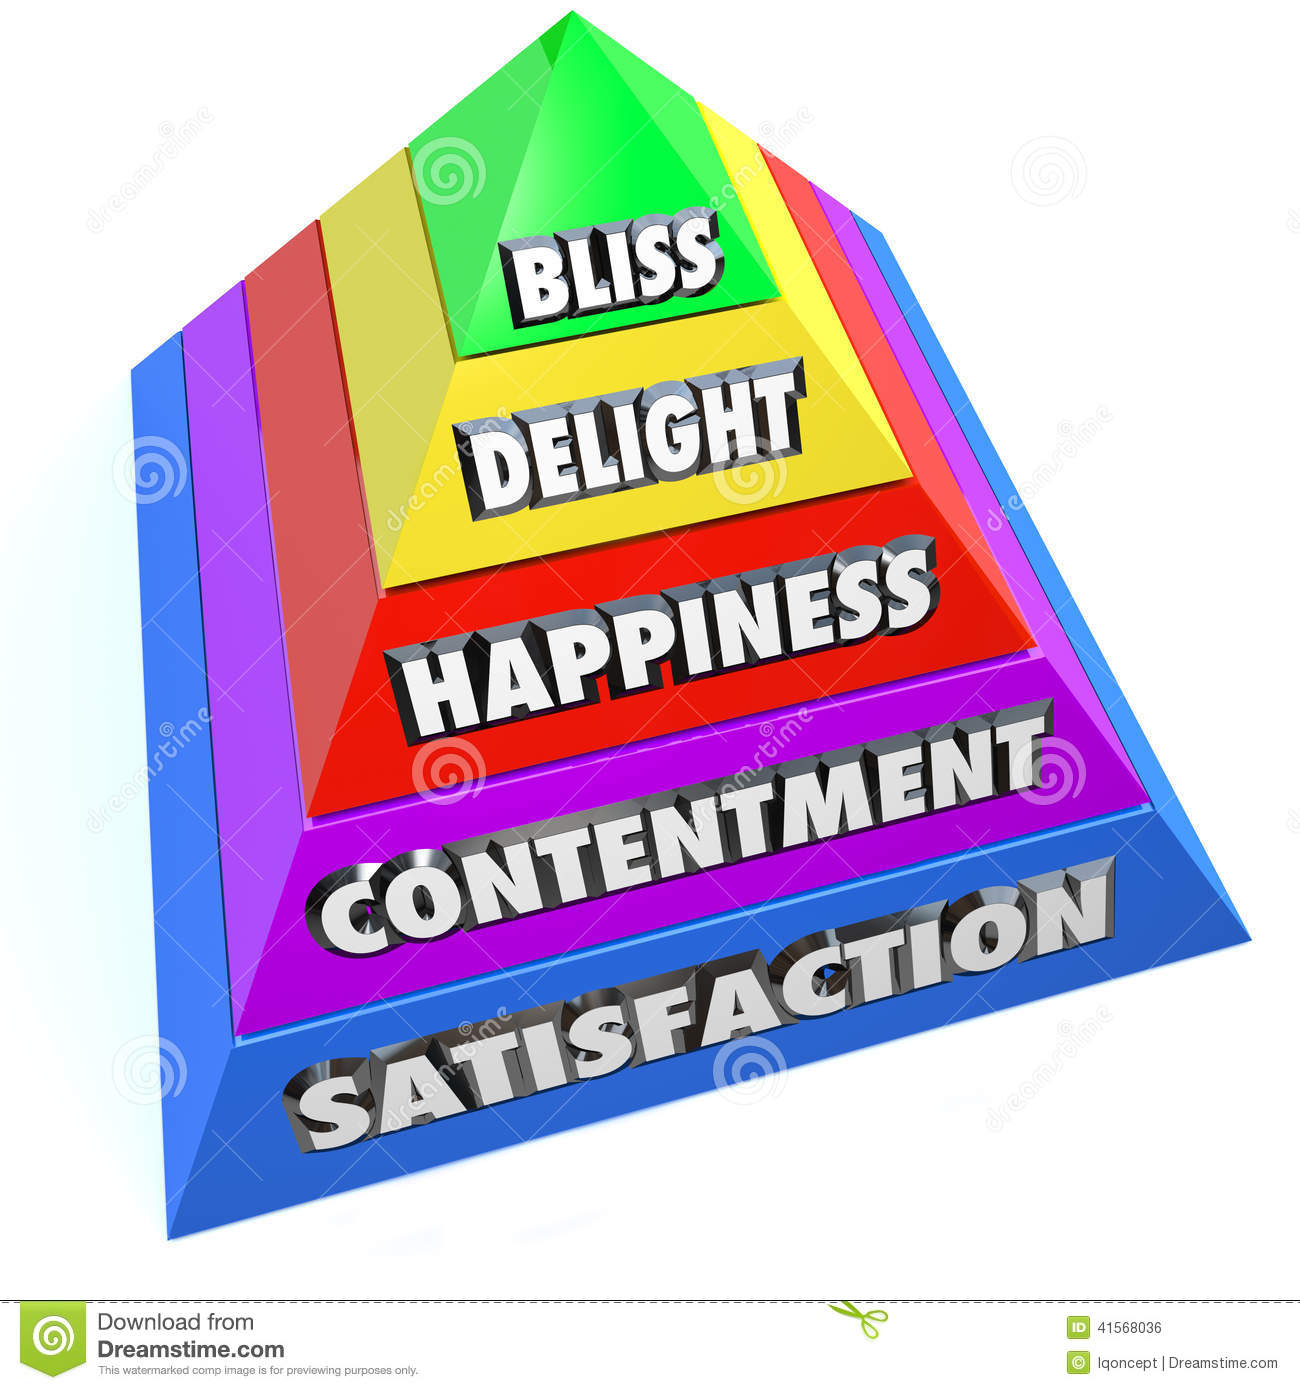 Happiness vs Contentment?!